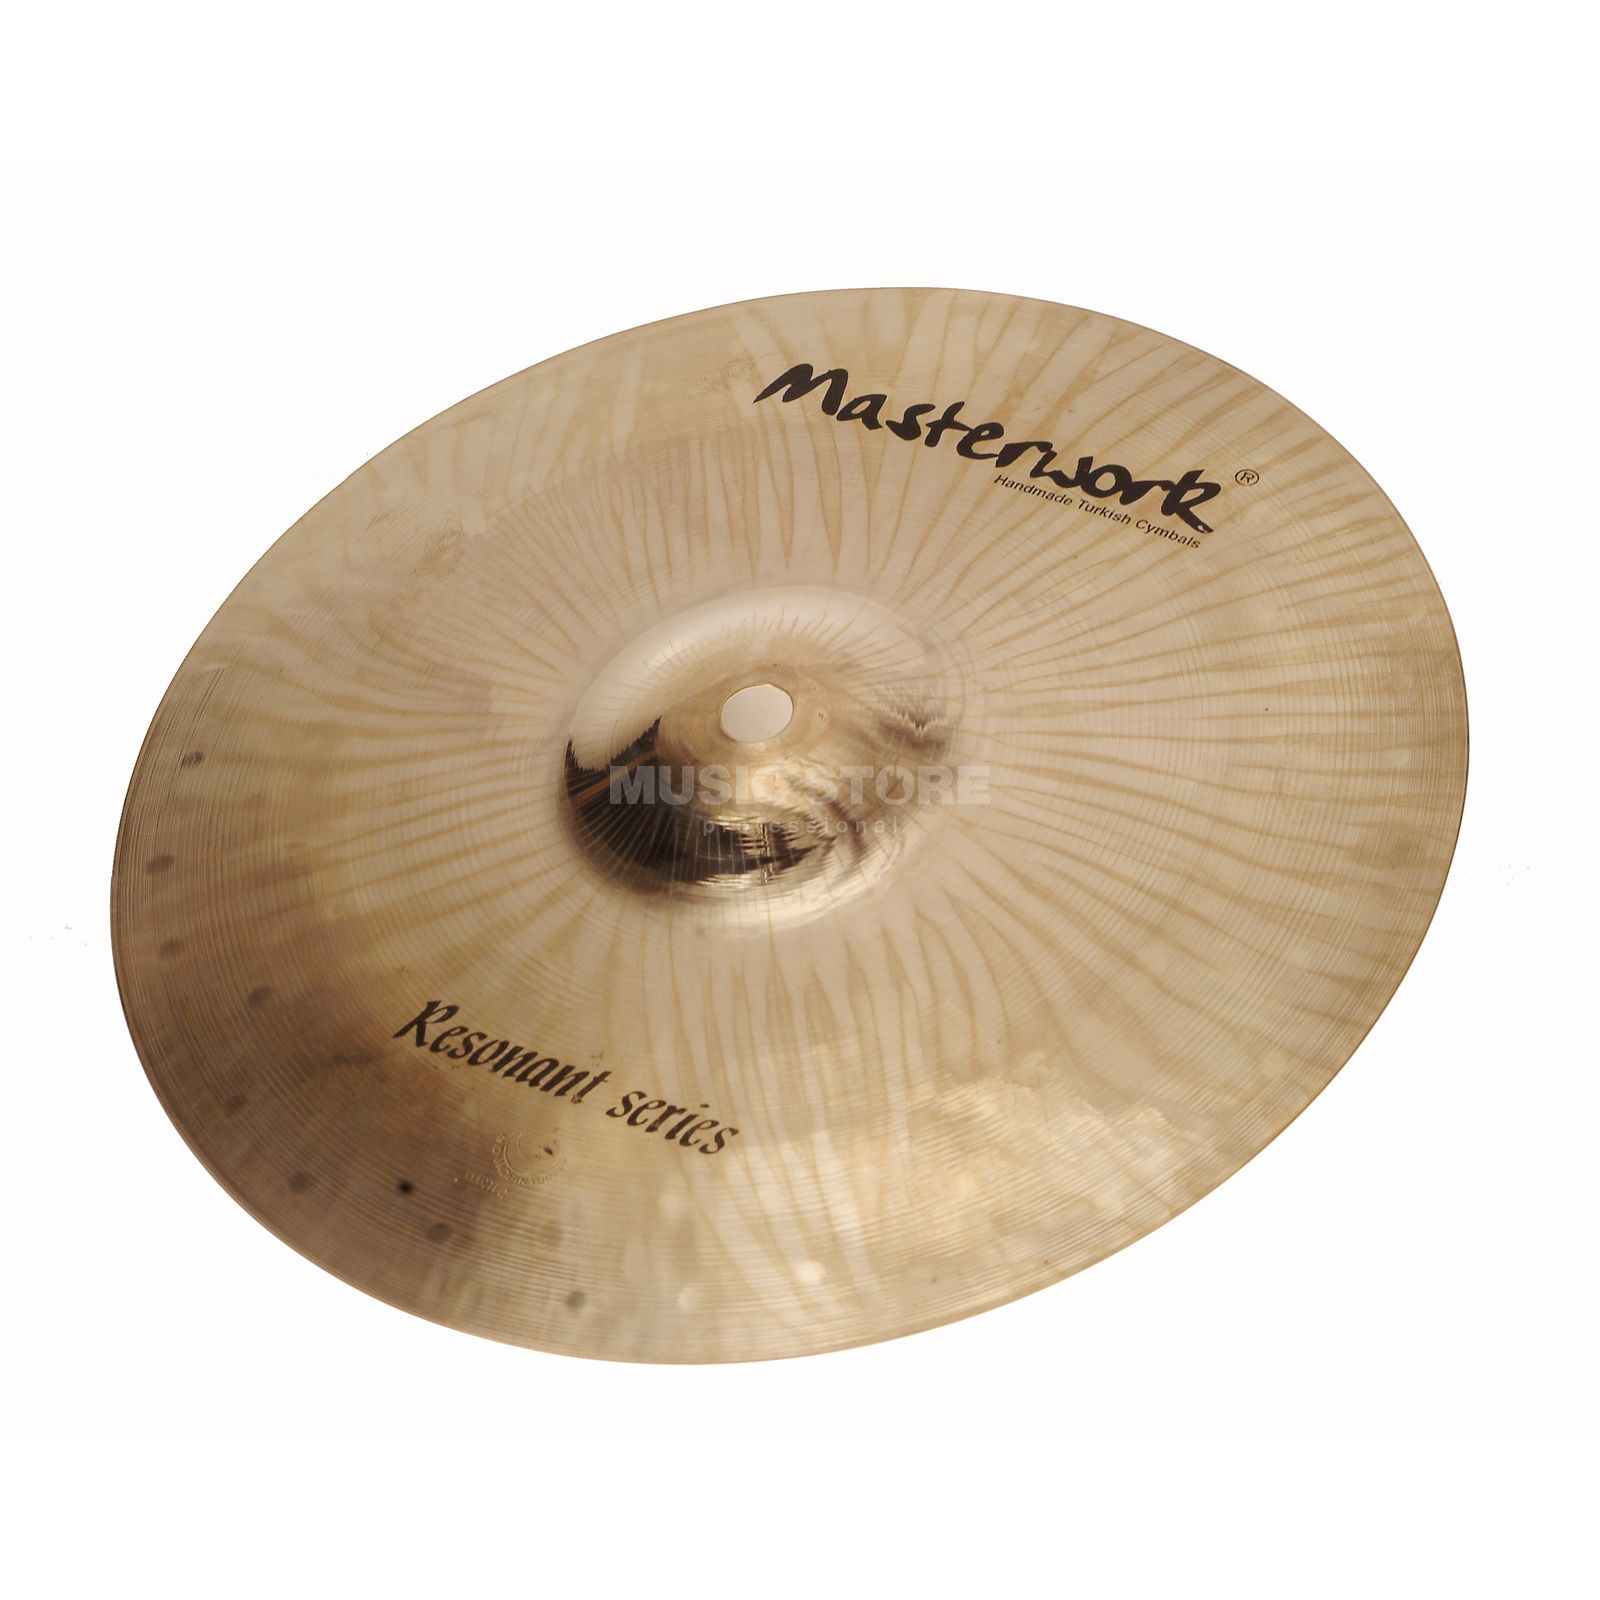 "Masterwork Resonant Splash 6"" Brilliant Finish Product Image"